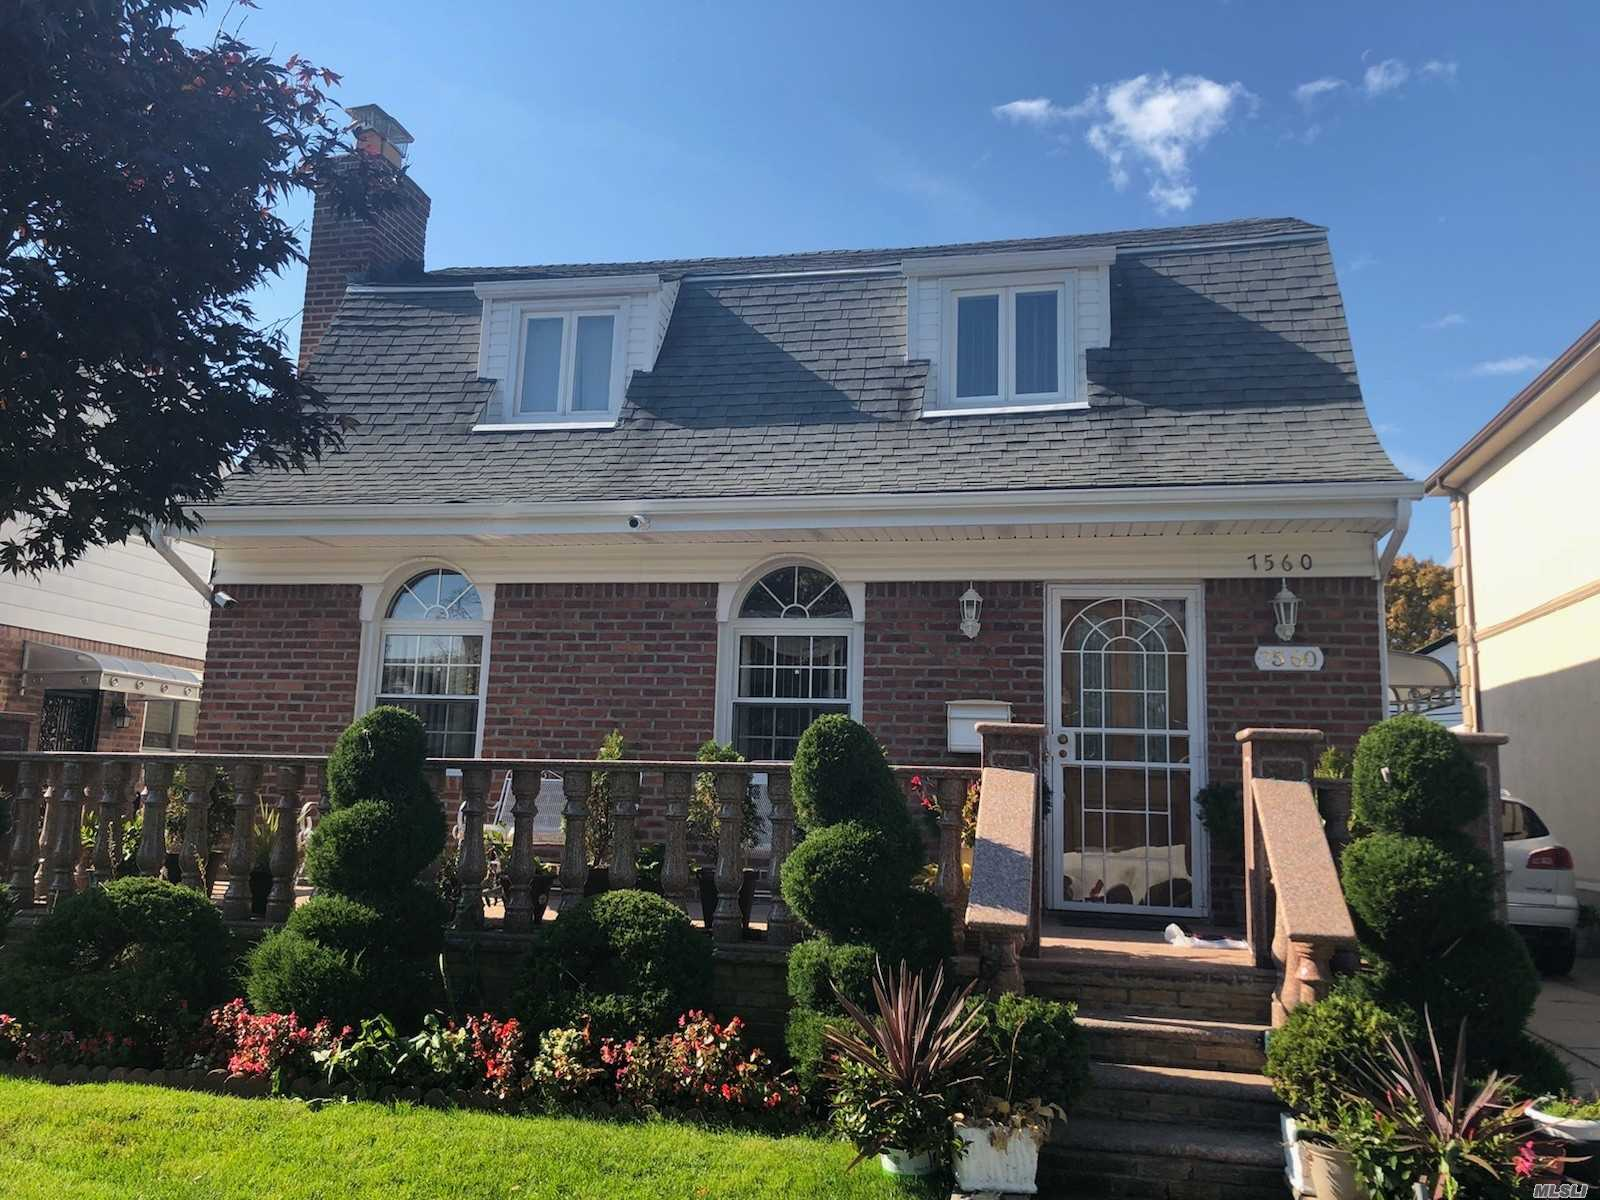 Gorgeous Huge Gross Morten House 27/42 Fully Remodeled With 6 Bed 3 Full Bath New Beautiful Kitchen With Bar , Finished Basement With Separate Entrance Backyard , Garage Steps To Union Tupk, Many Extras , Must See To Appreciate It.